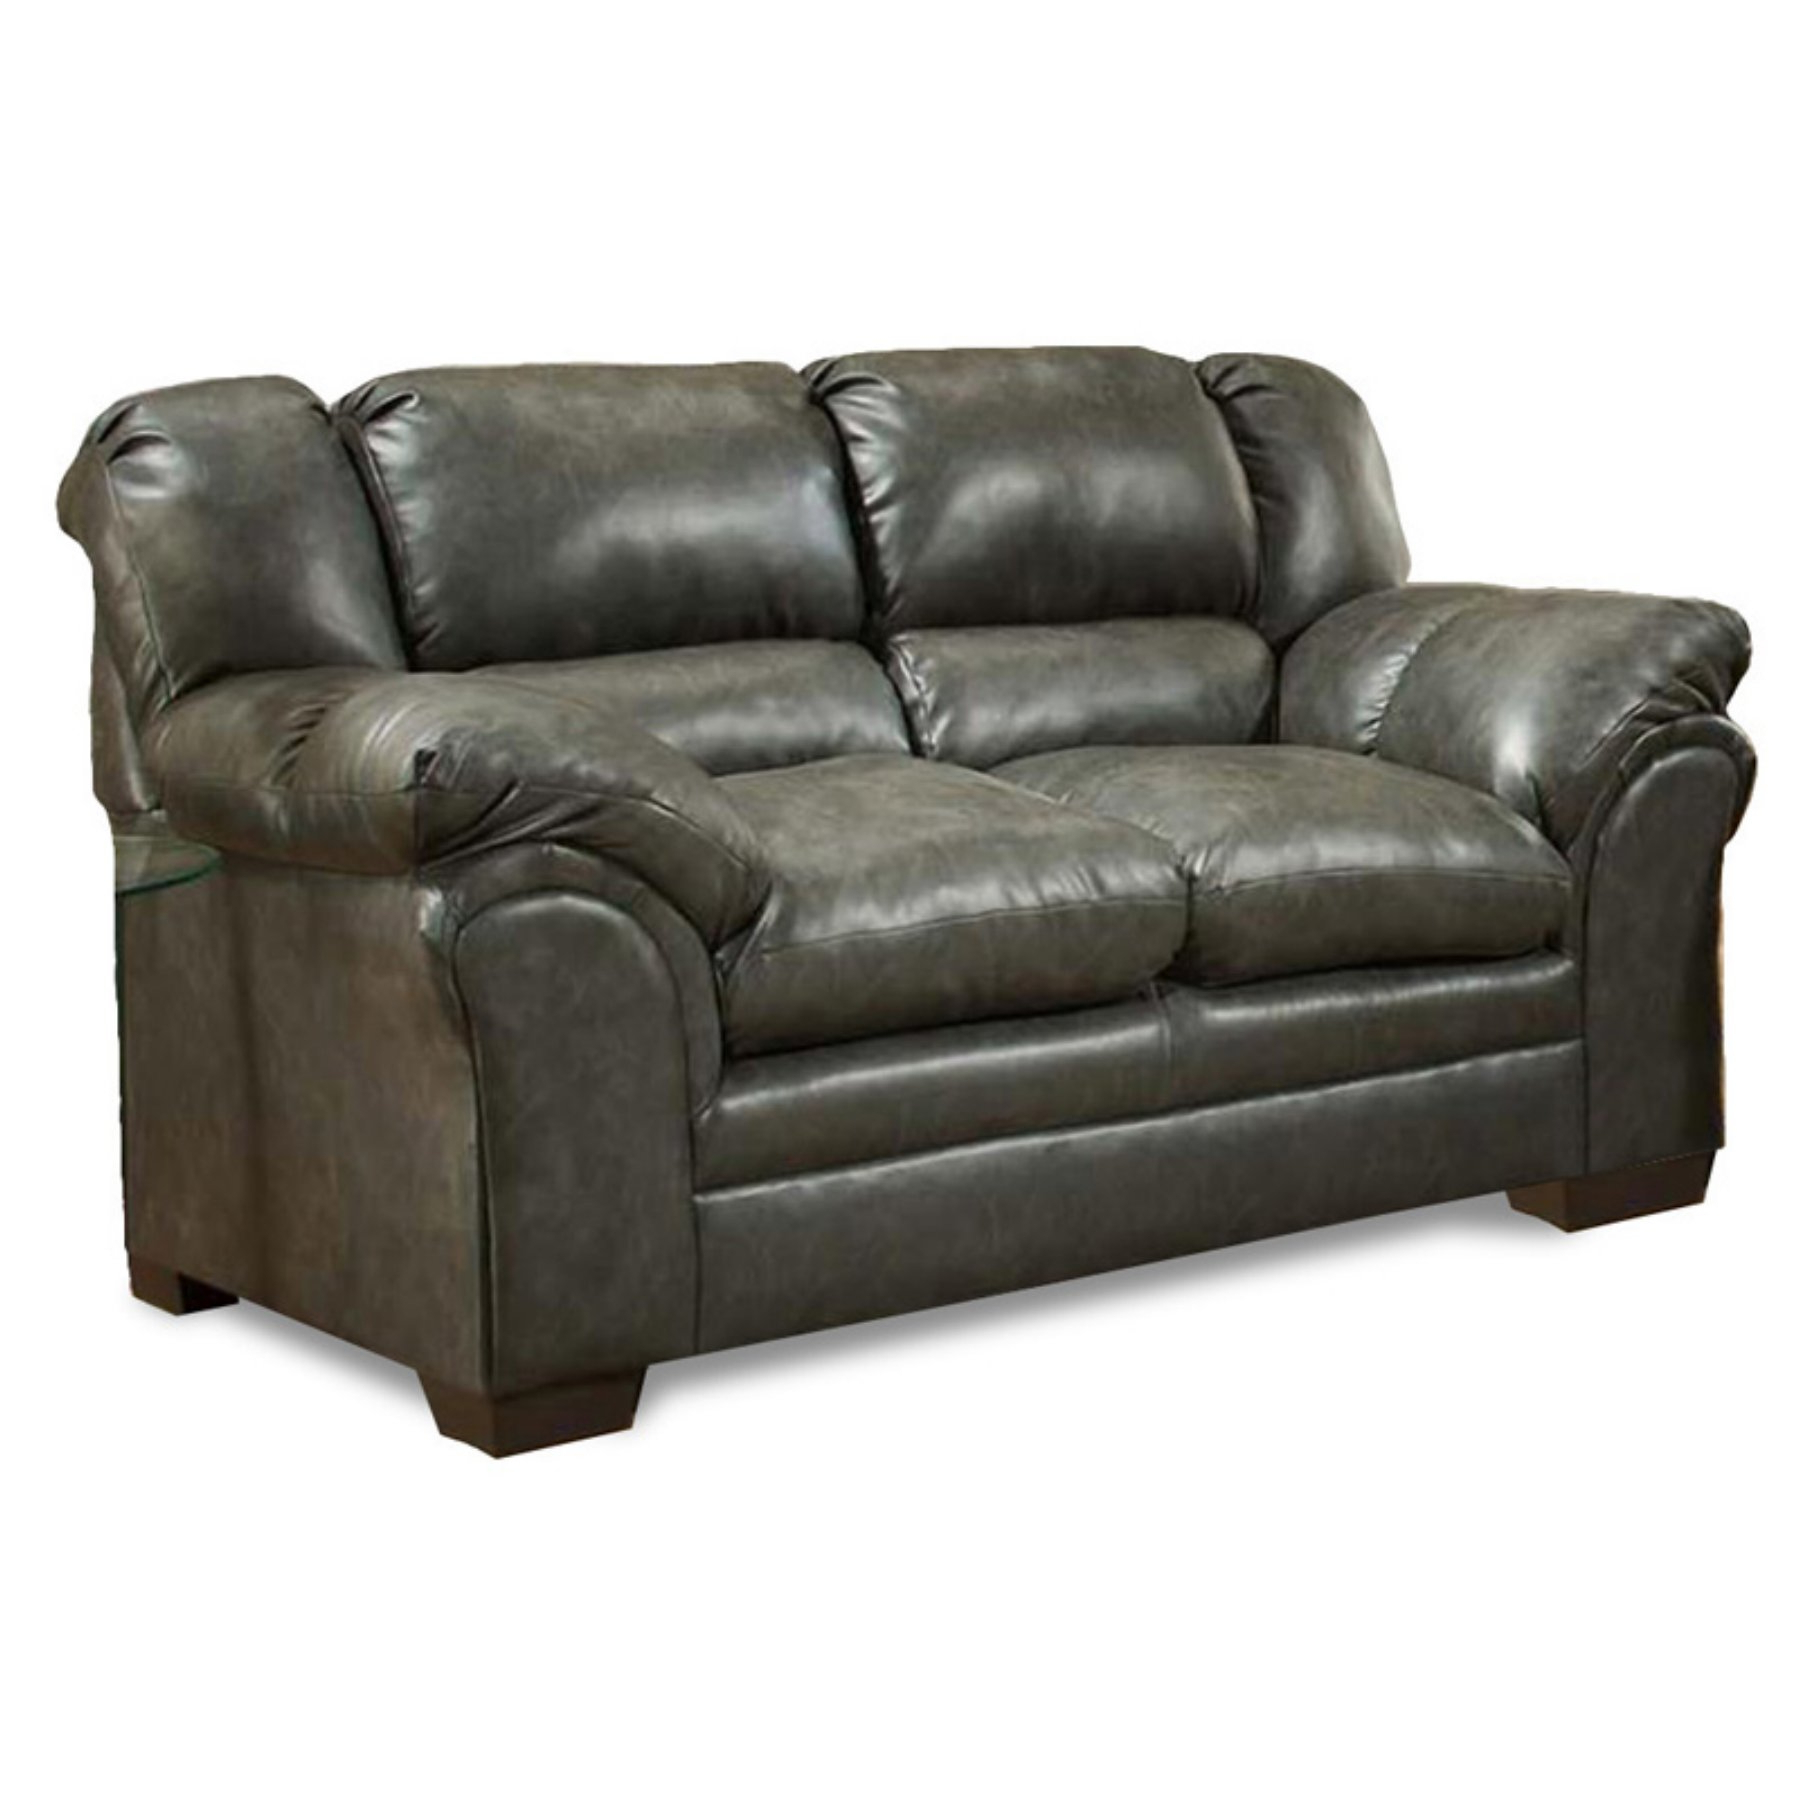 Discount Furniture In Latest Declan 3 Piece Power Reclining Sectionals With Right Facing Console Loveseat (Gallery 7 of 20)